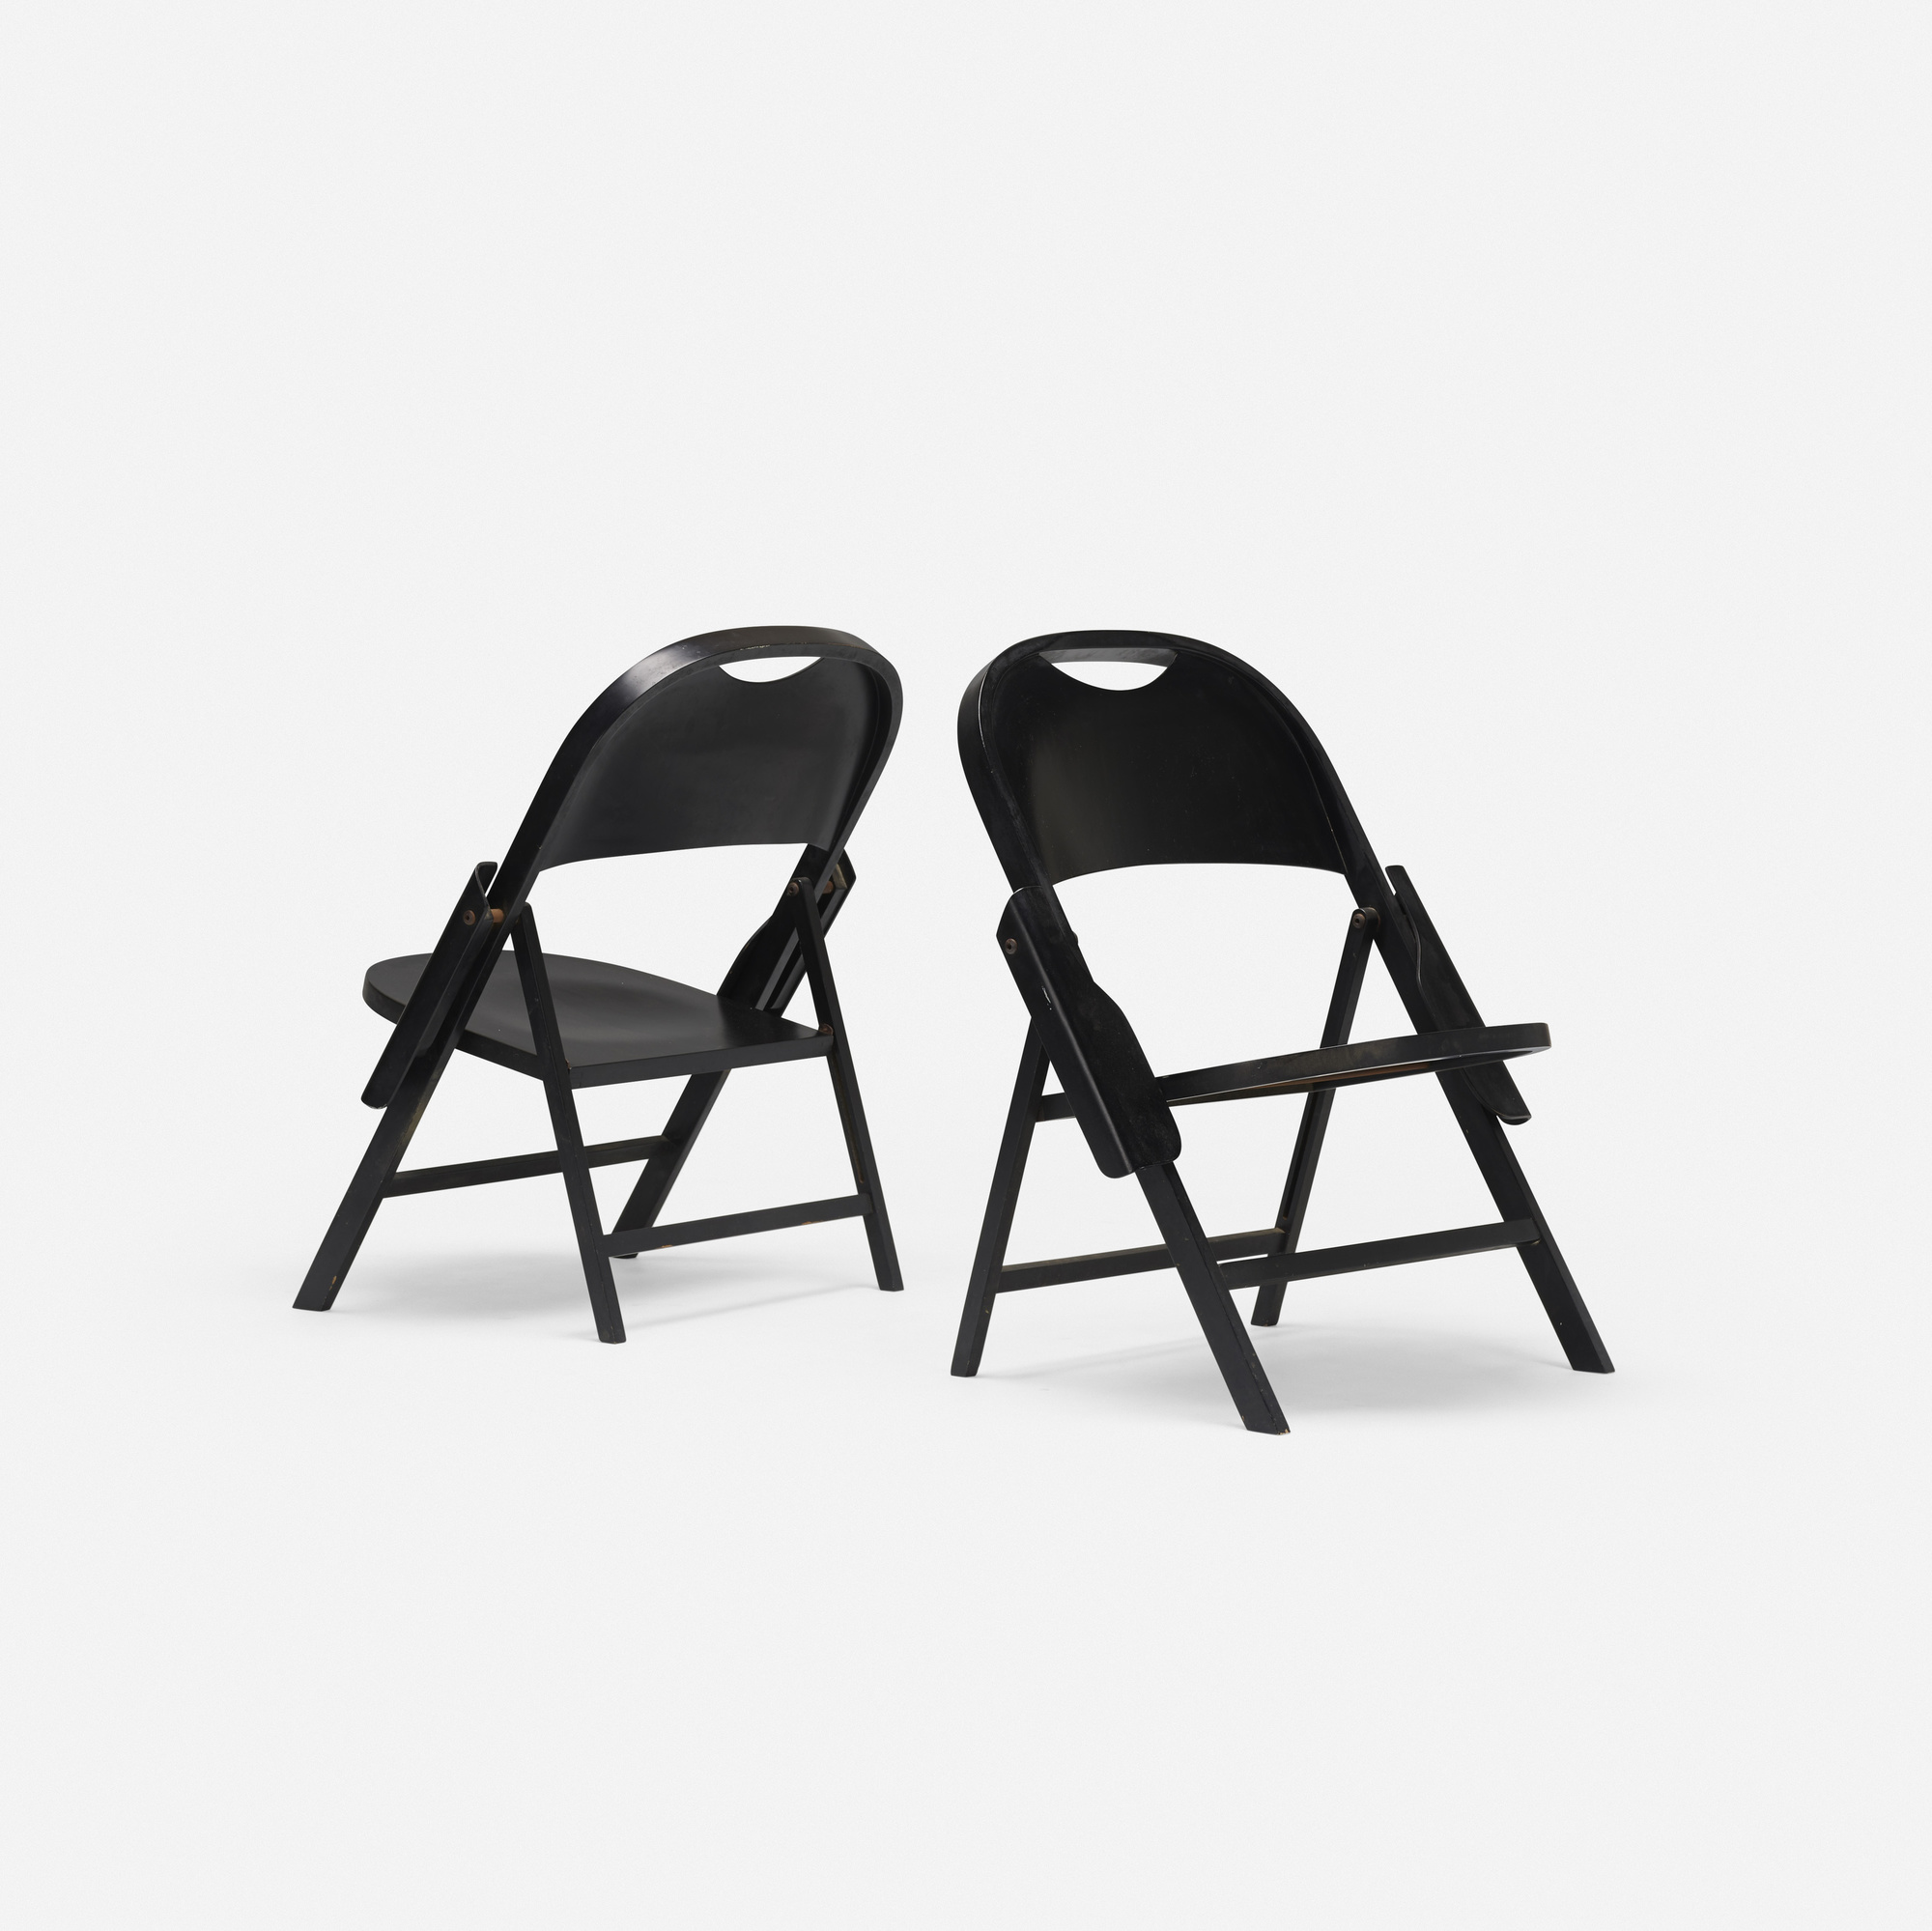 196: Achille and Pier Giacomo Castiglioni / Ginevra folding chairs, pair (2 of 3)